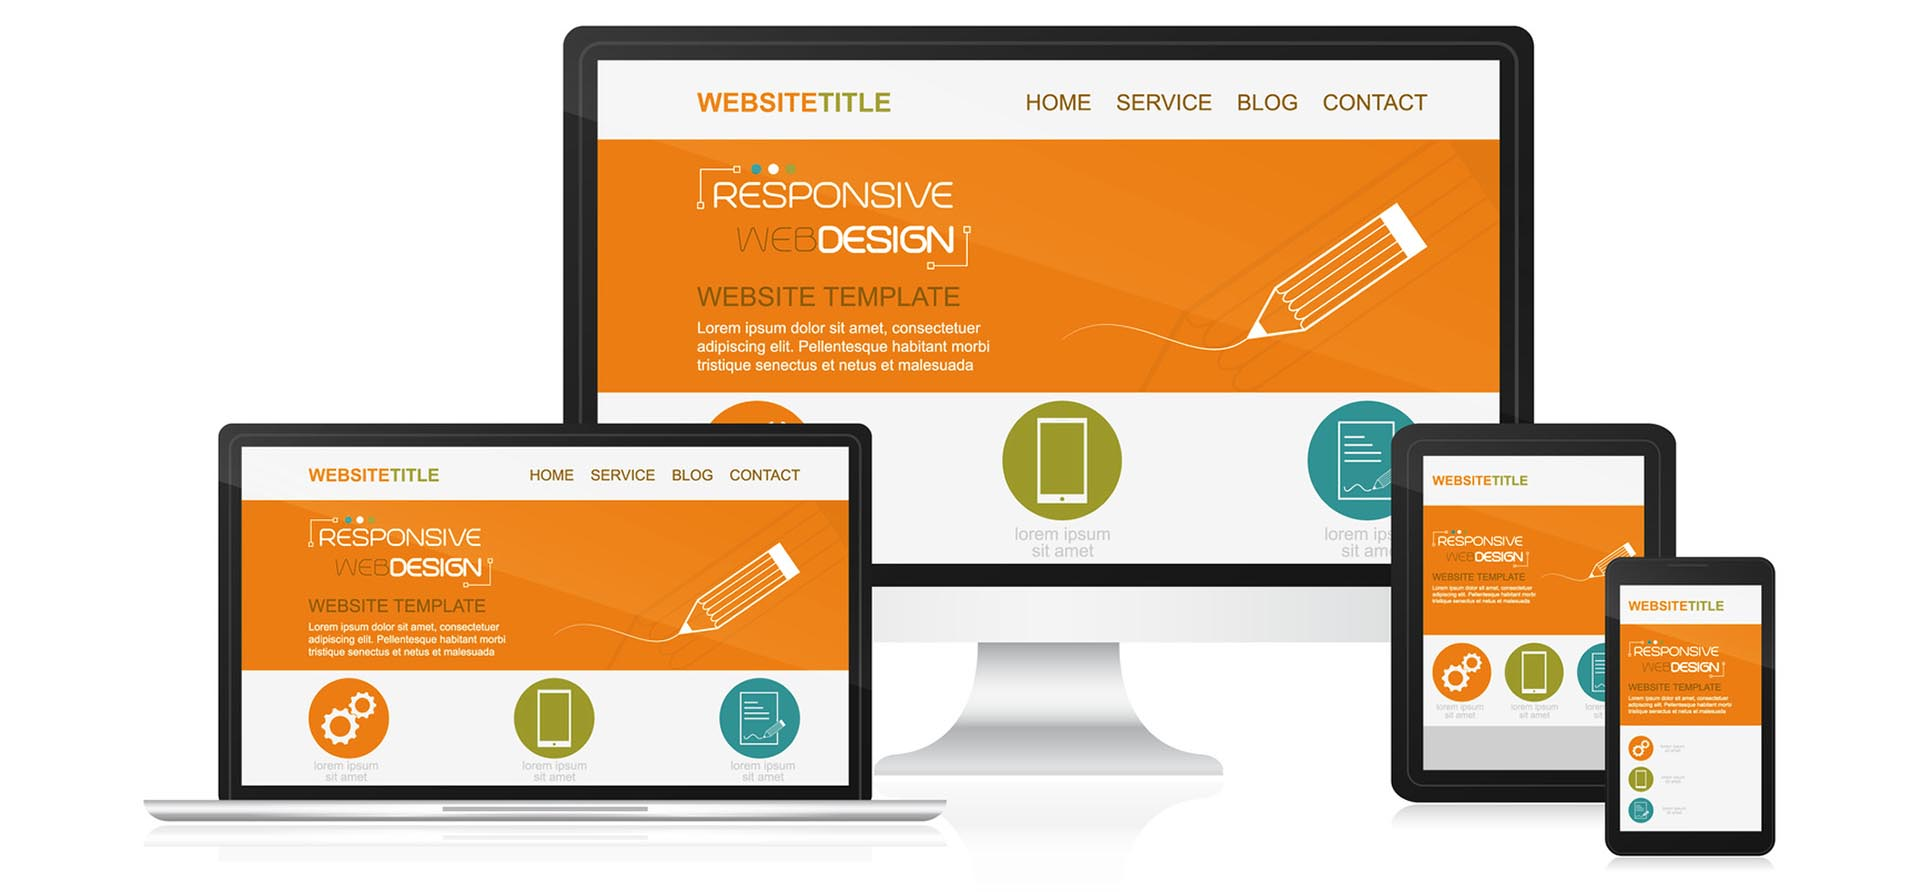 All websites in this list have responsive design